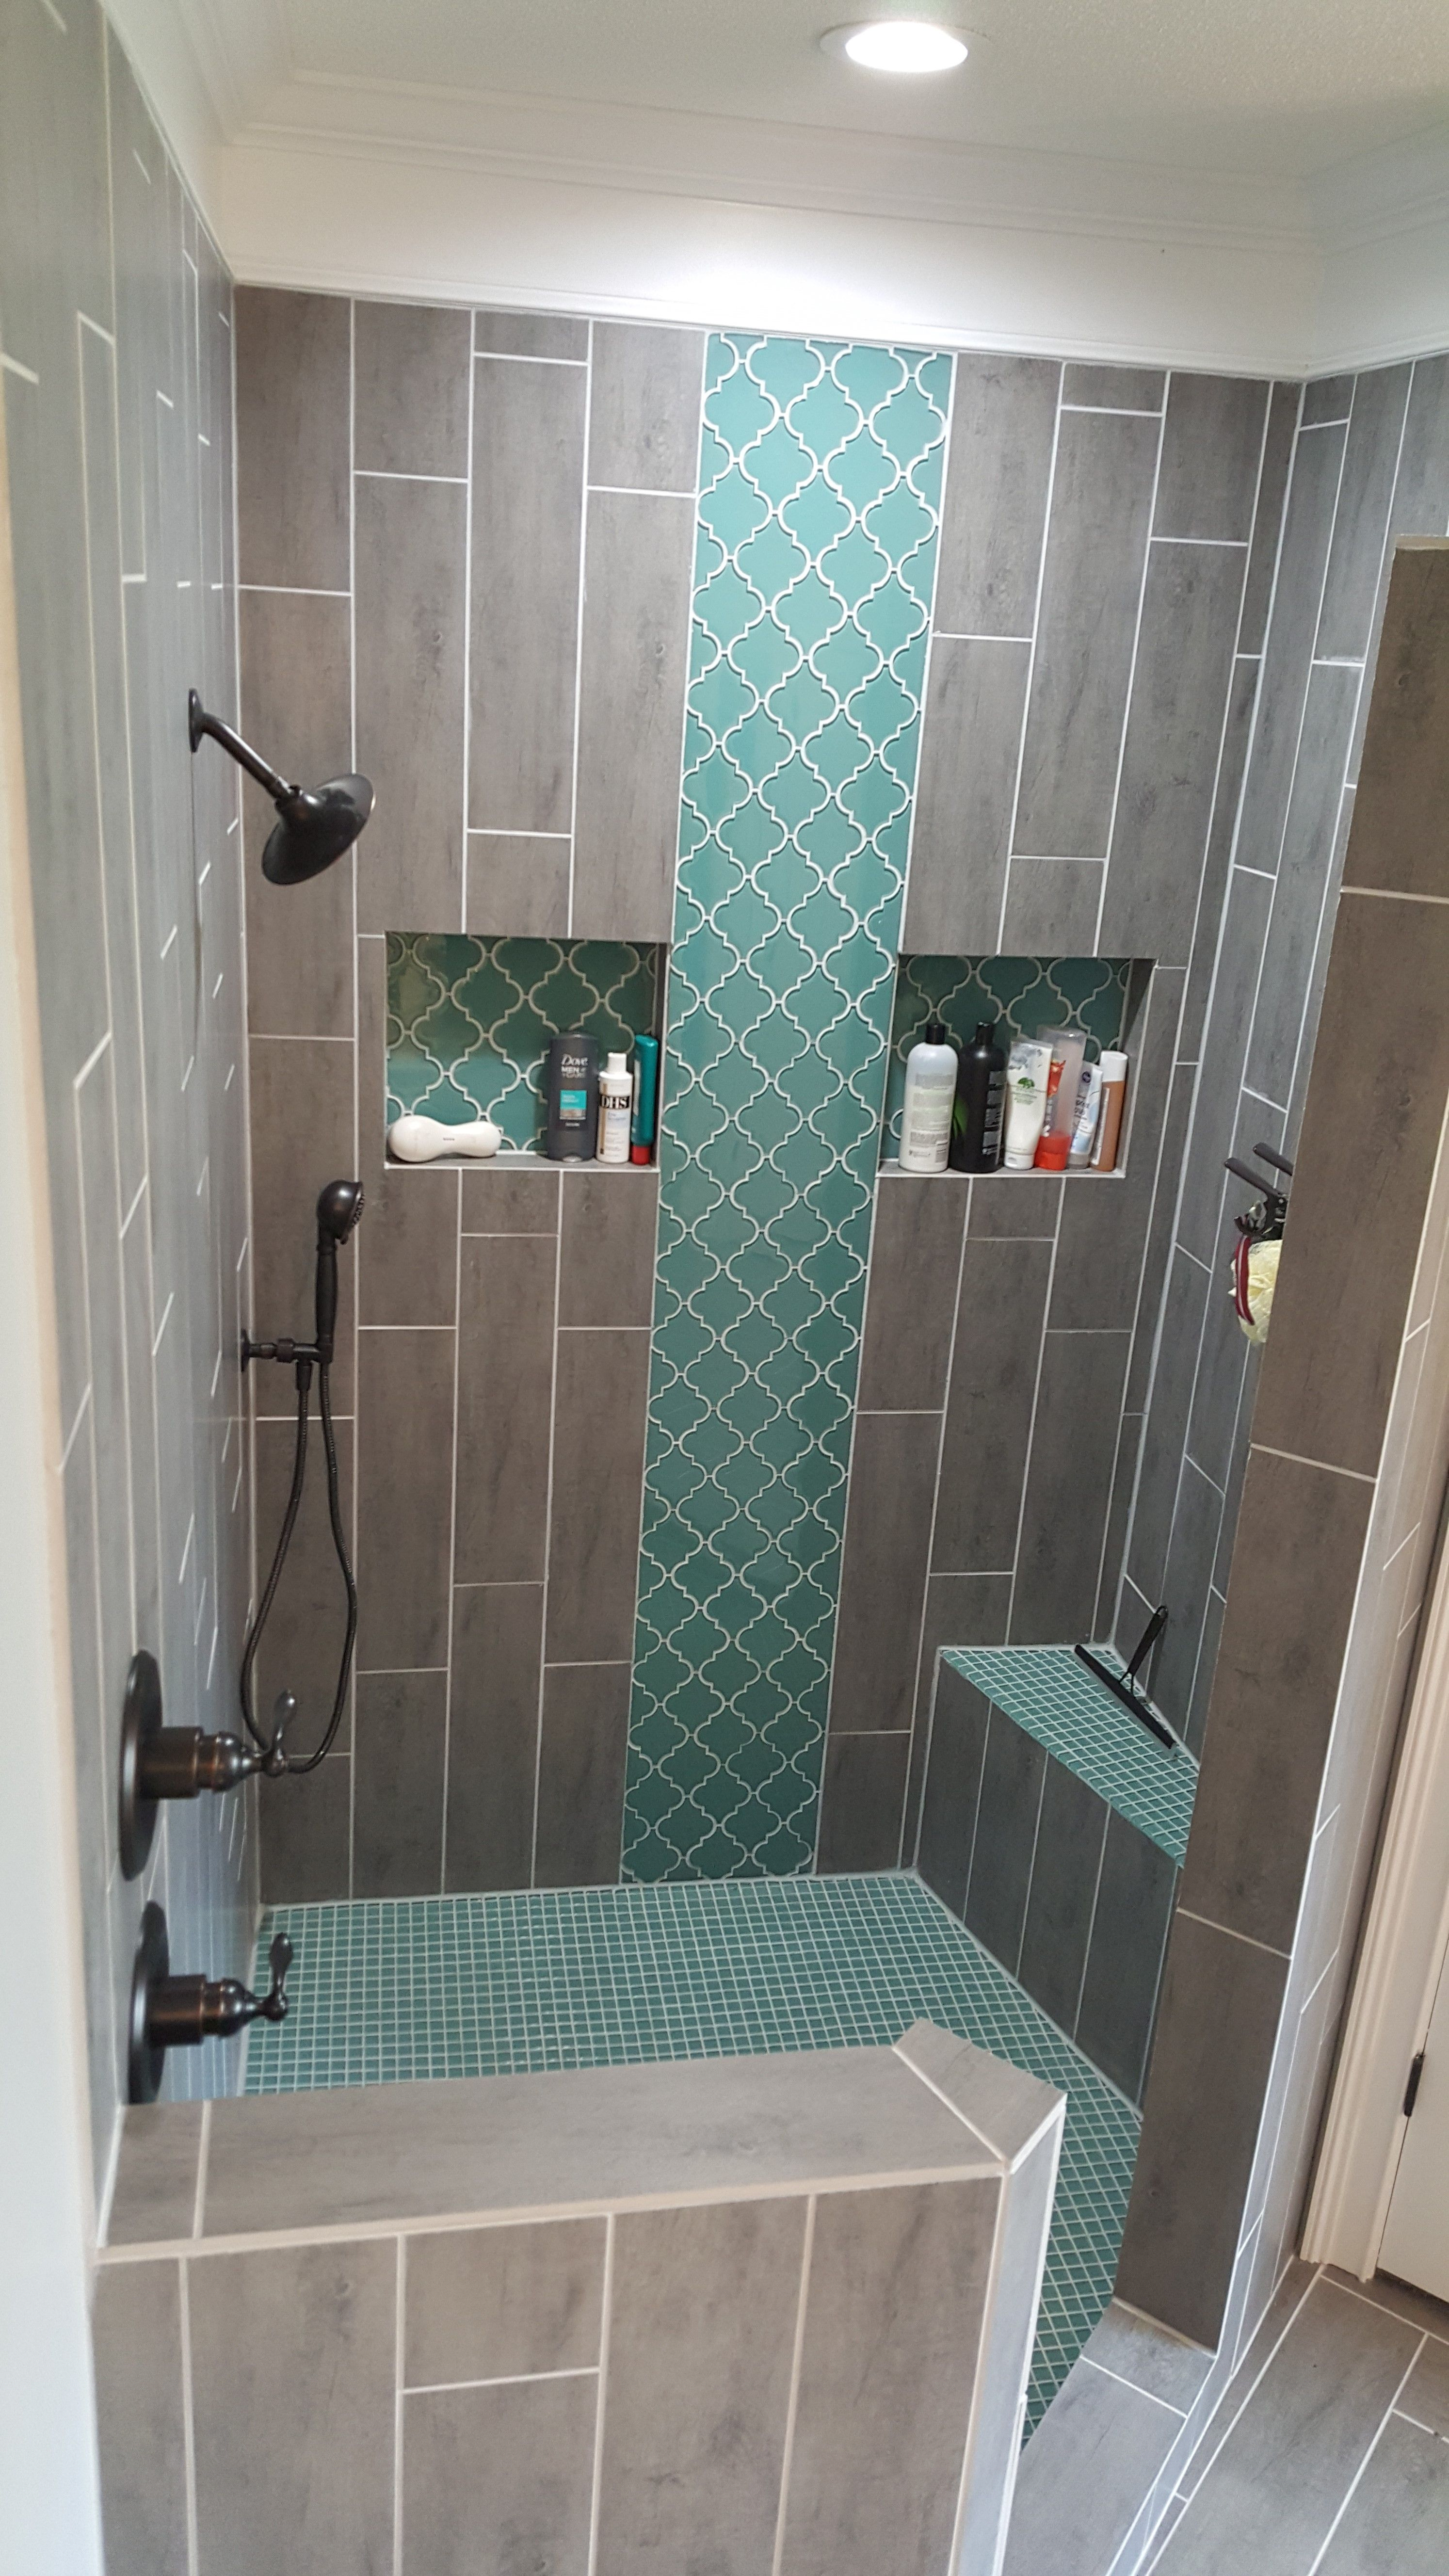 Teal Arabesque Tile Accent Teal Shower Floor Grey Woodgrain Shower Tile Home Renovation